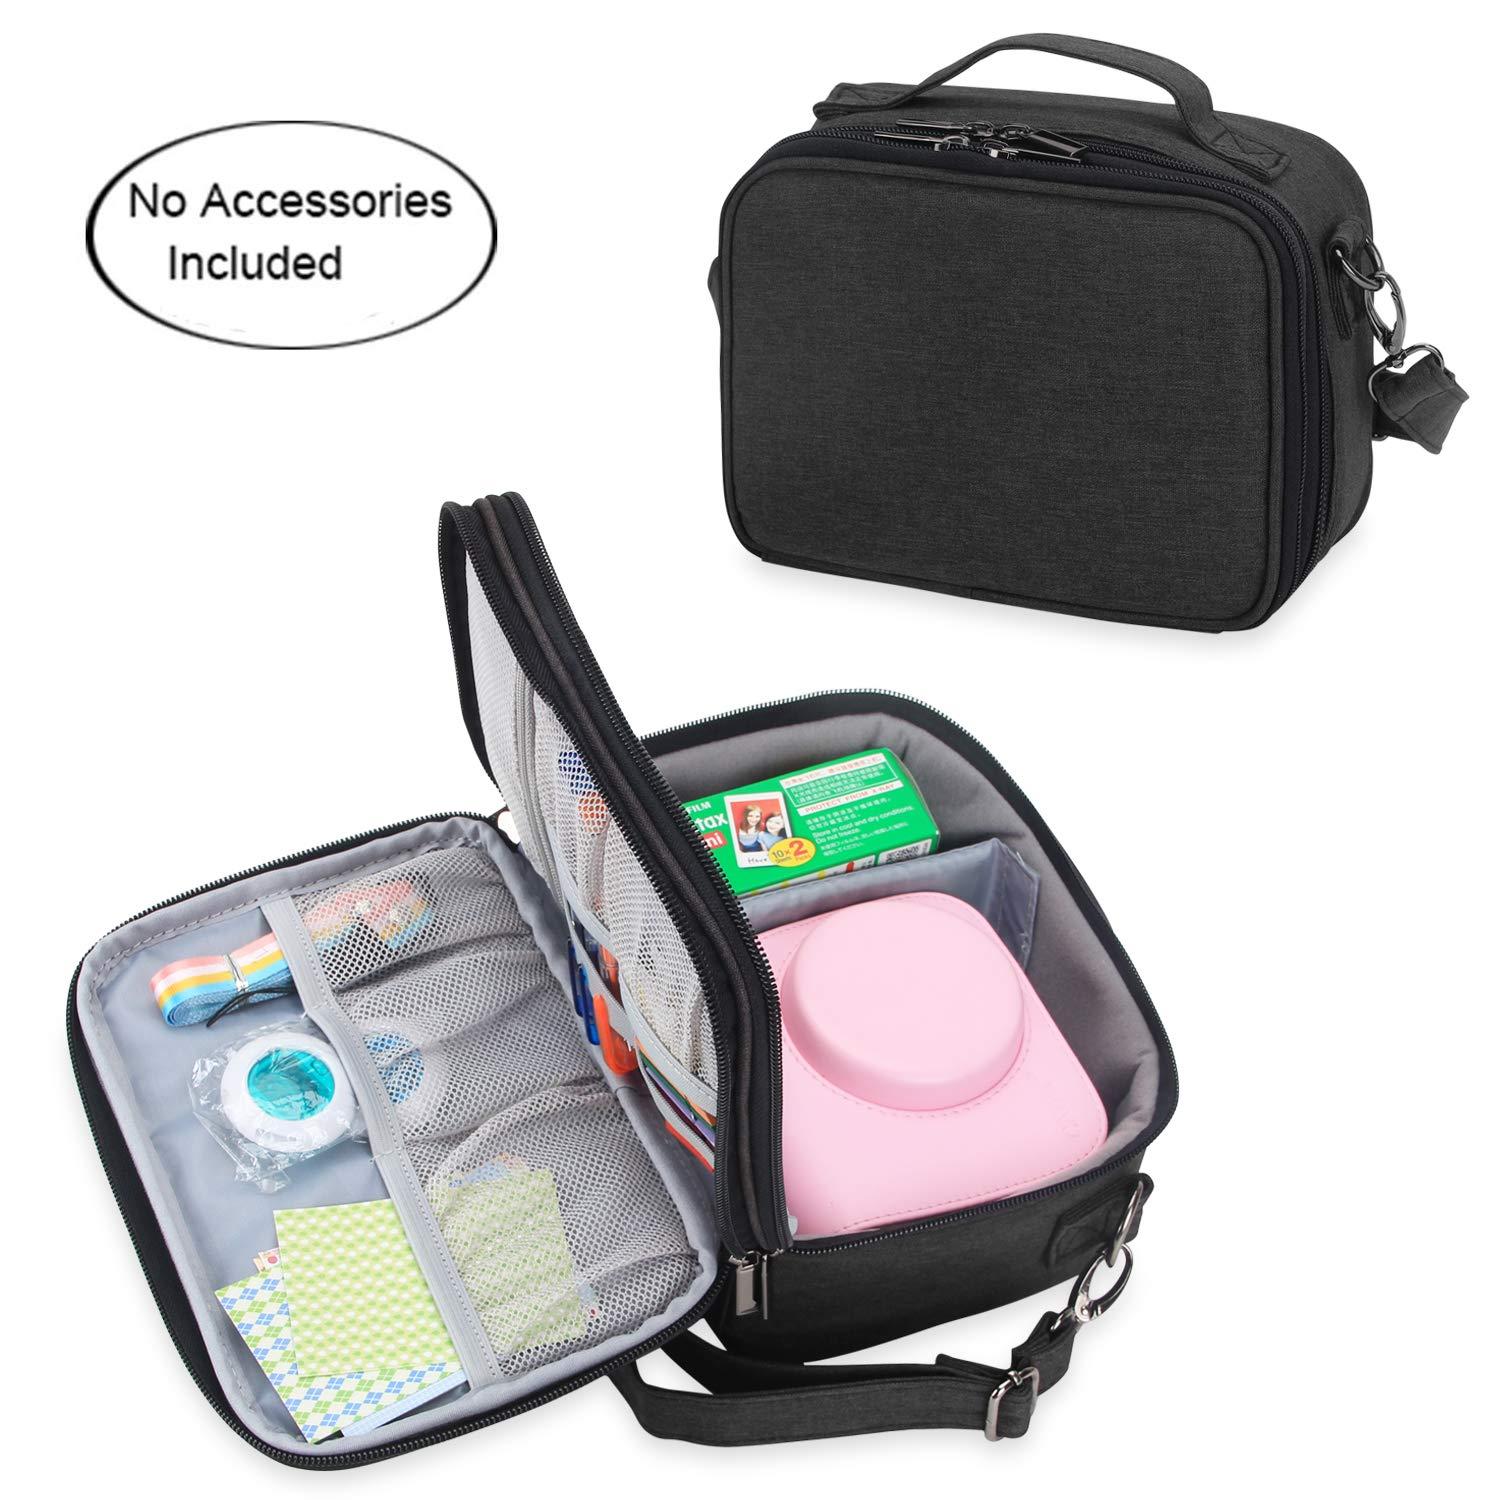 Teamoy Camera Case Compatible with Fujifilm Instax Mini 9, Travel Carrying Storage Bag for Instant Camera and Accessories, Black